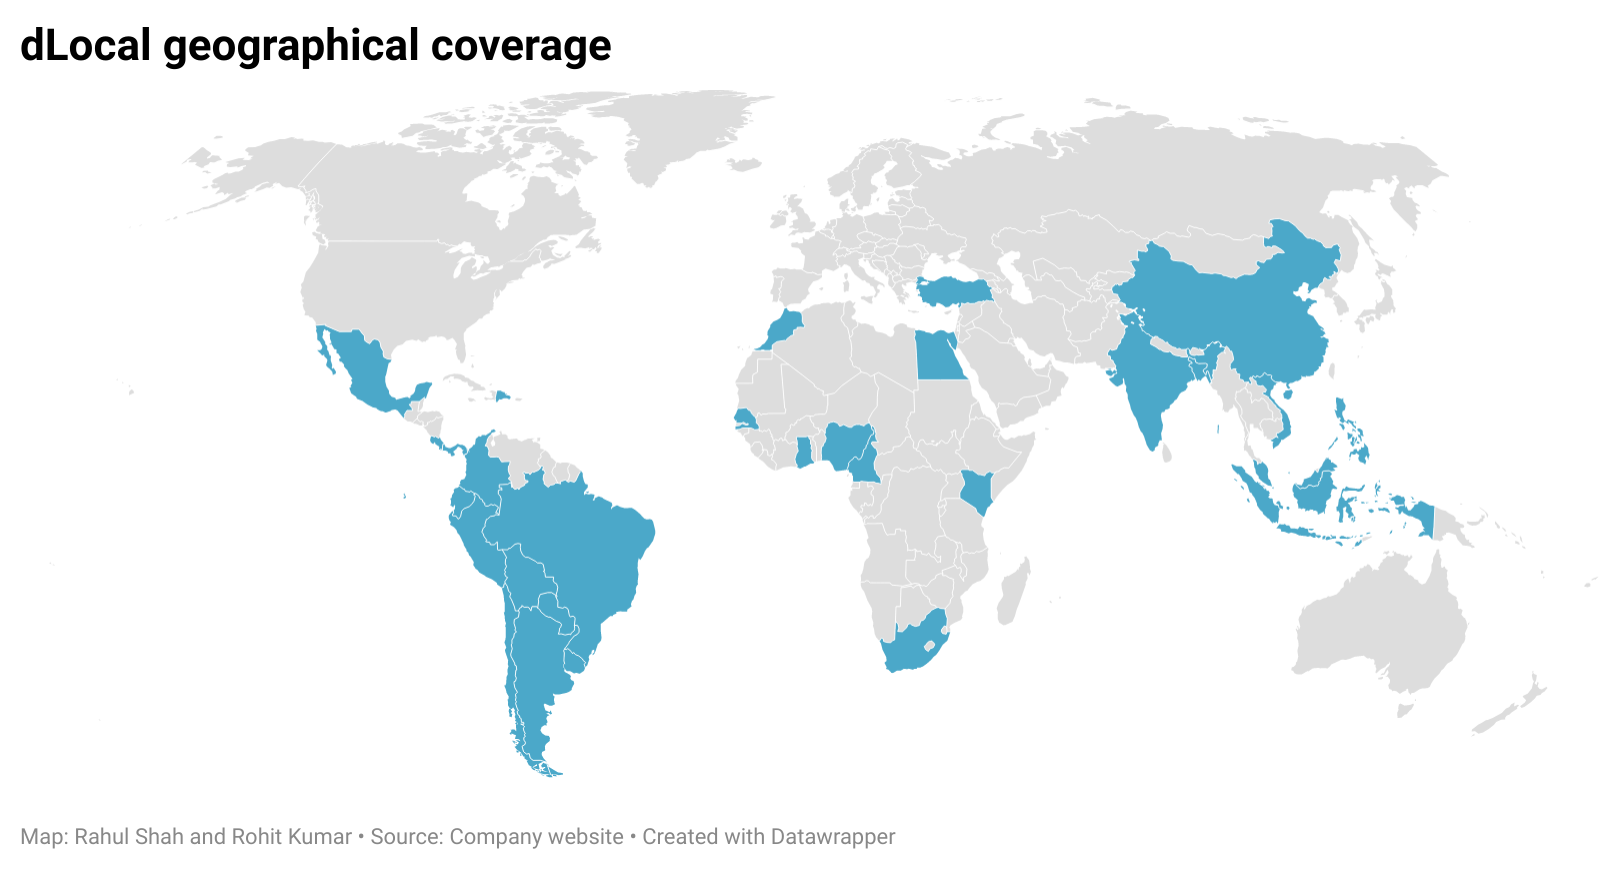 dLocal geographical coverage